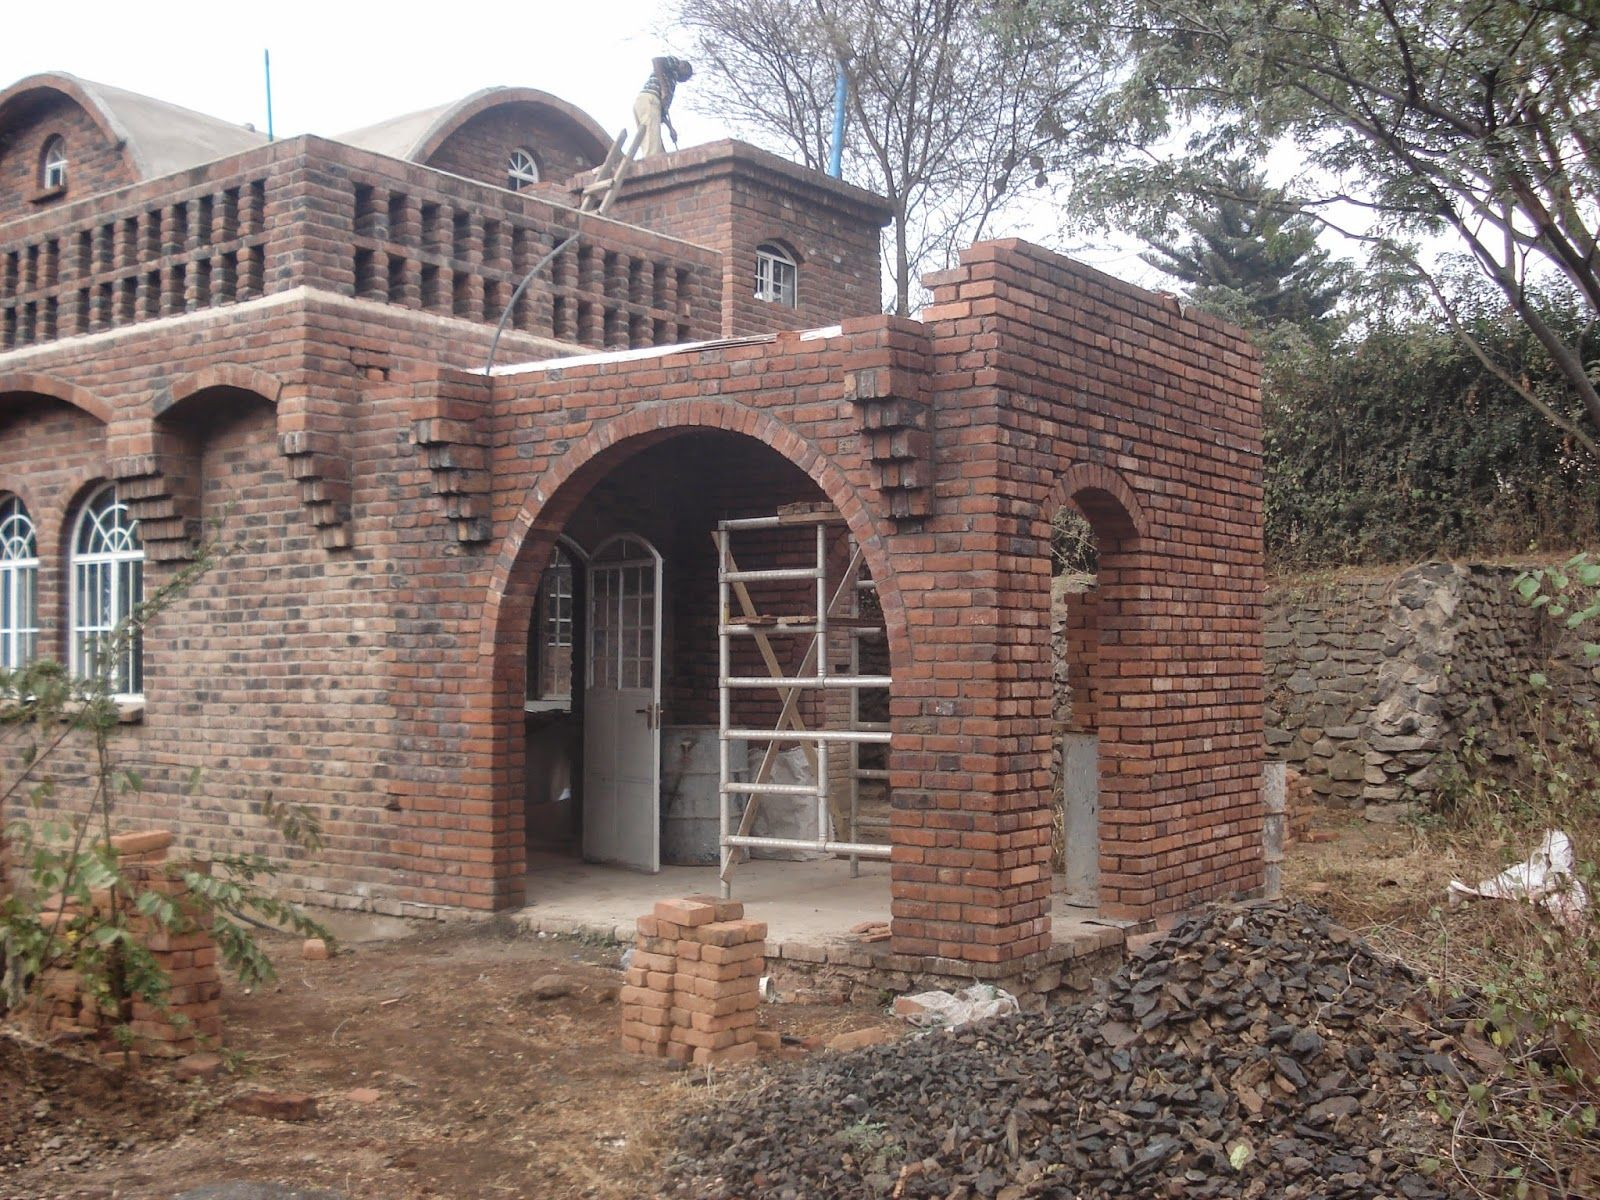 Catalan Vaulted Roof Ceiling Brick Architecture Masonry Construction Brick Construction